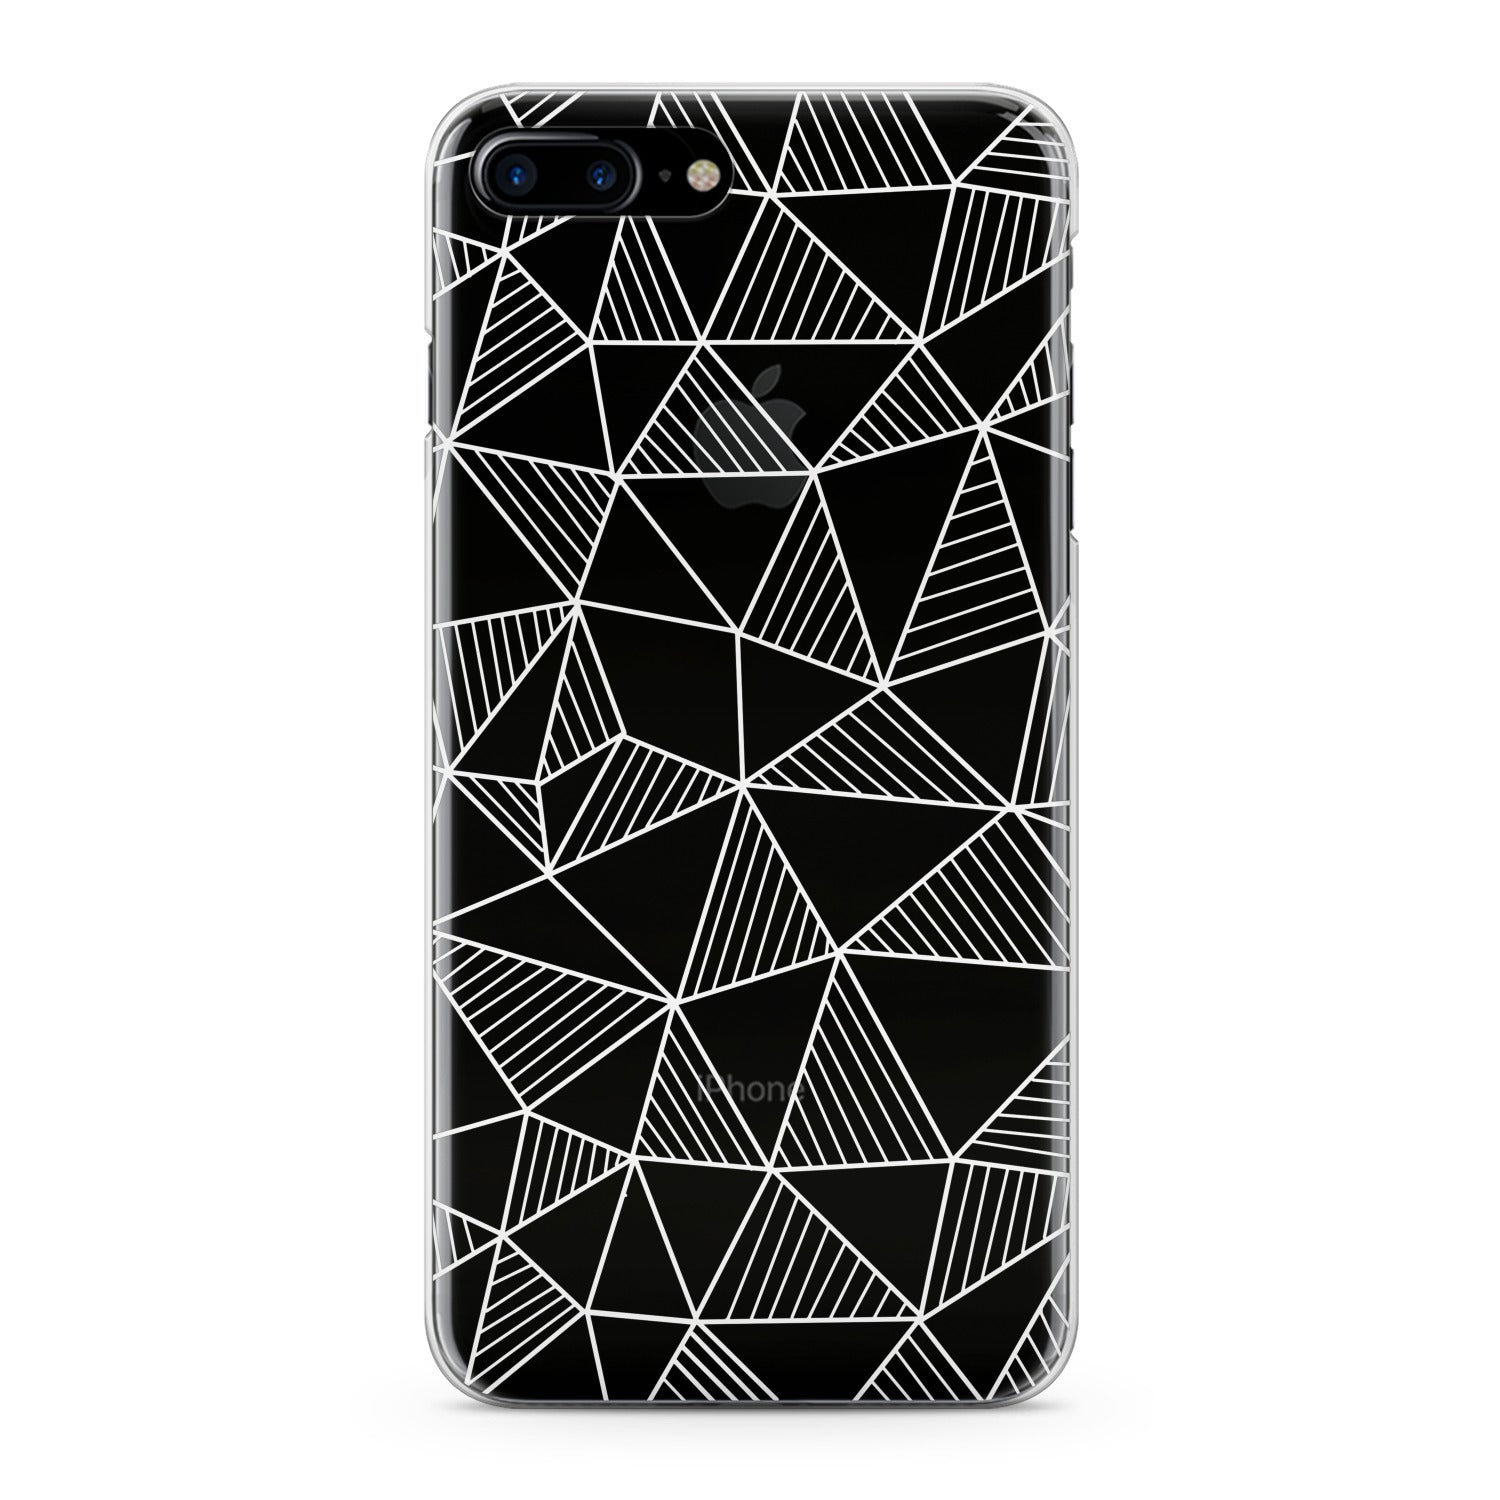 Lex Altern Triangle Geometry Phone Case for your iPhone & Android phone.